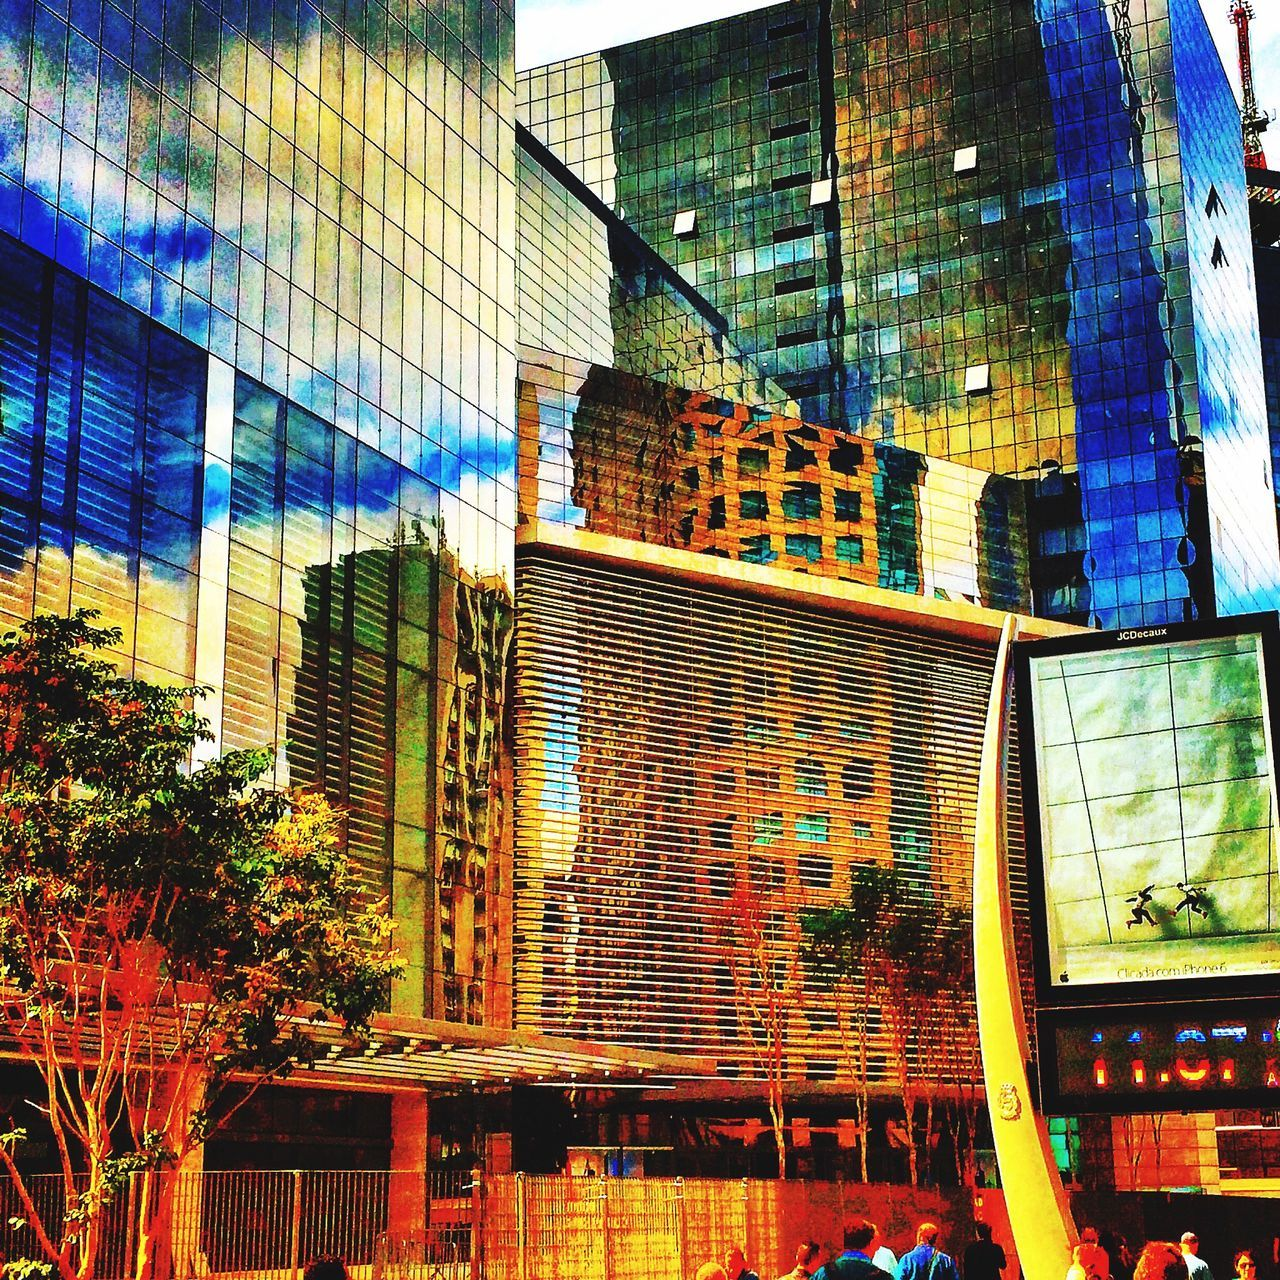 architecture, city, skyscraper, building exterior, modern, built structure, reflection, outdoors, no people, low angle view, day, cityscape